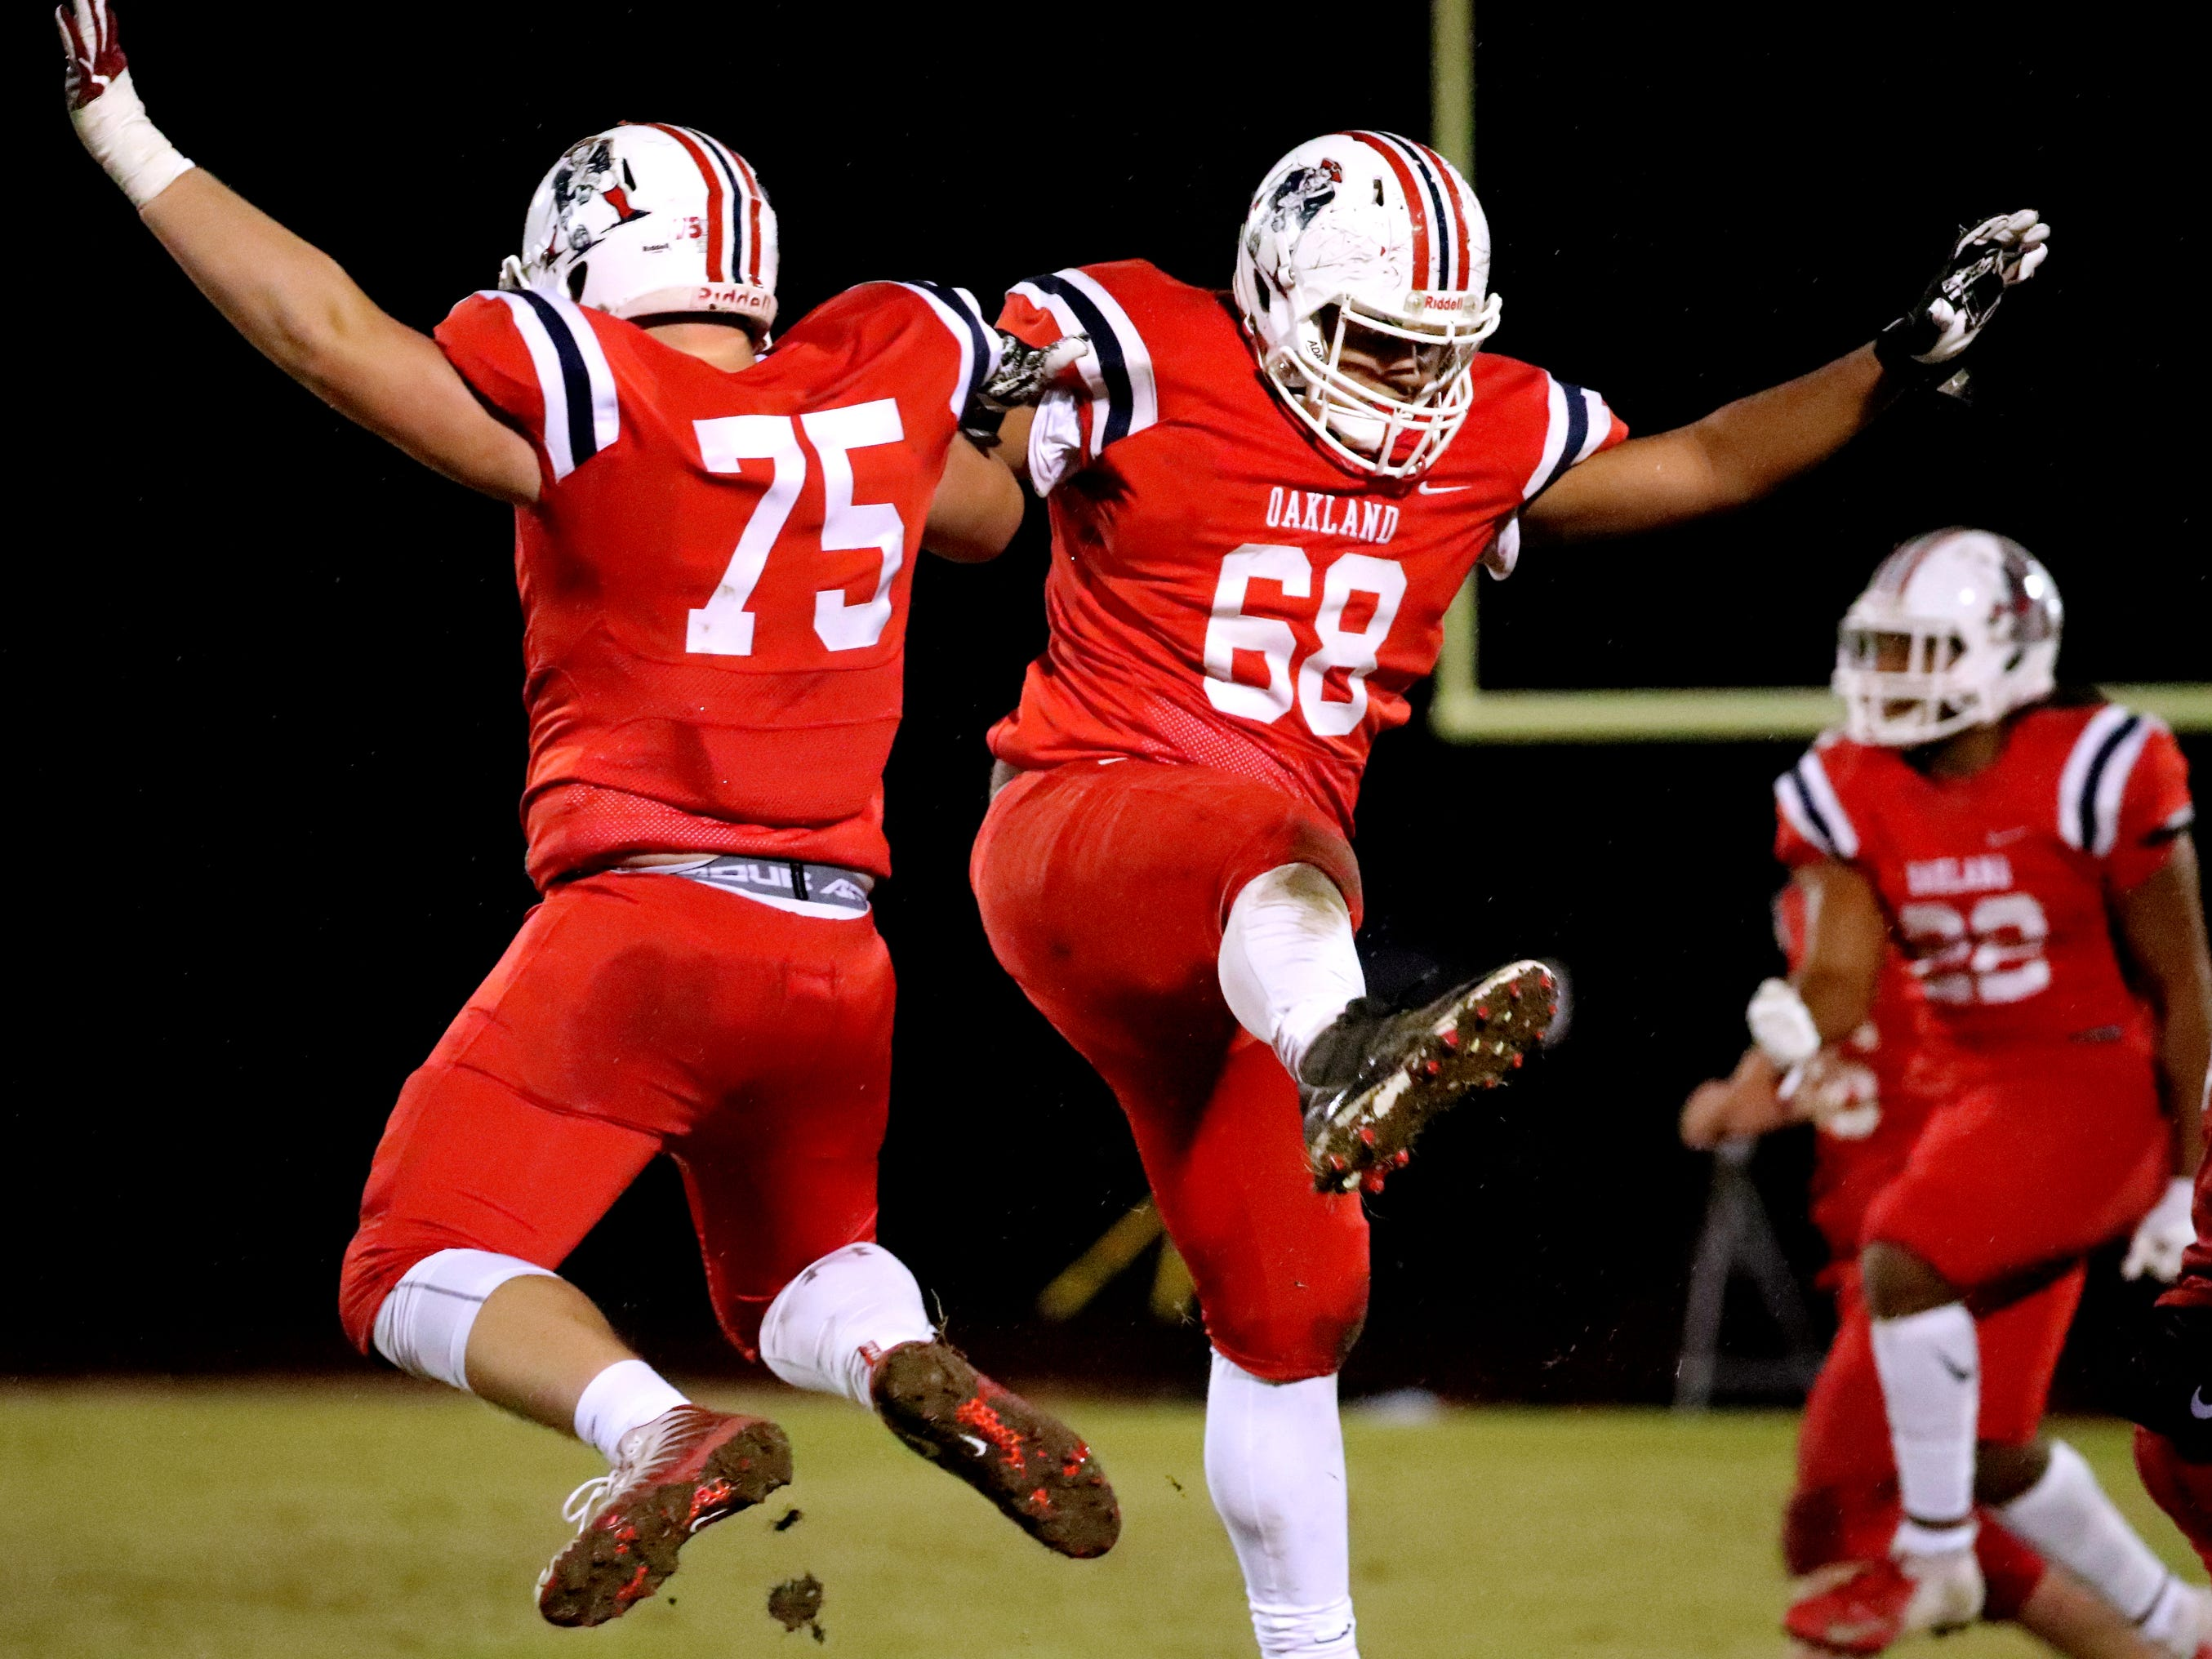 Oakland's Kain Williams (75) and Jalyn Willard (68) celebrate a fumble recovery by Oakland's Malik Sibert (11) during the game against Maryville at Oakland in Murfreesboro, on Friday, Aug. 23 2018, during the 6A playoffs.